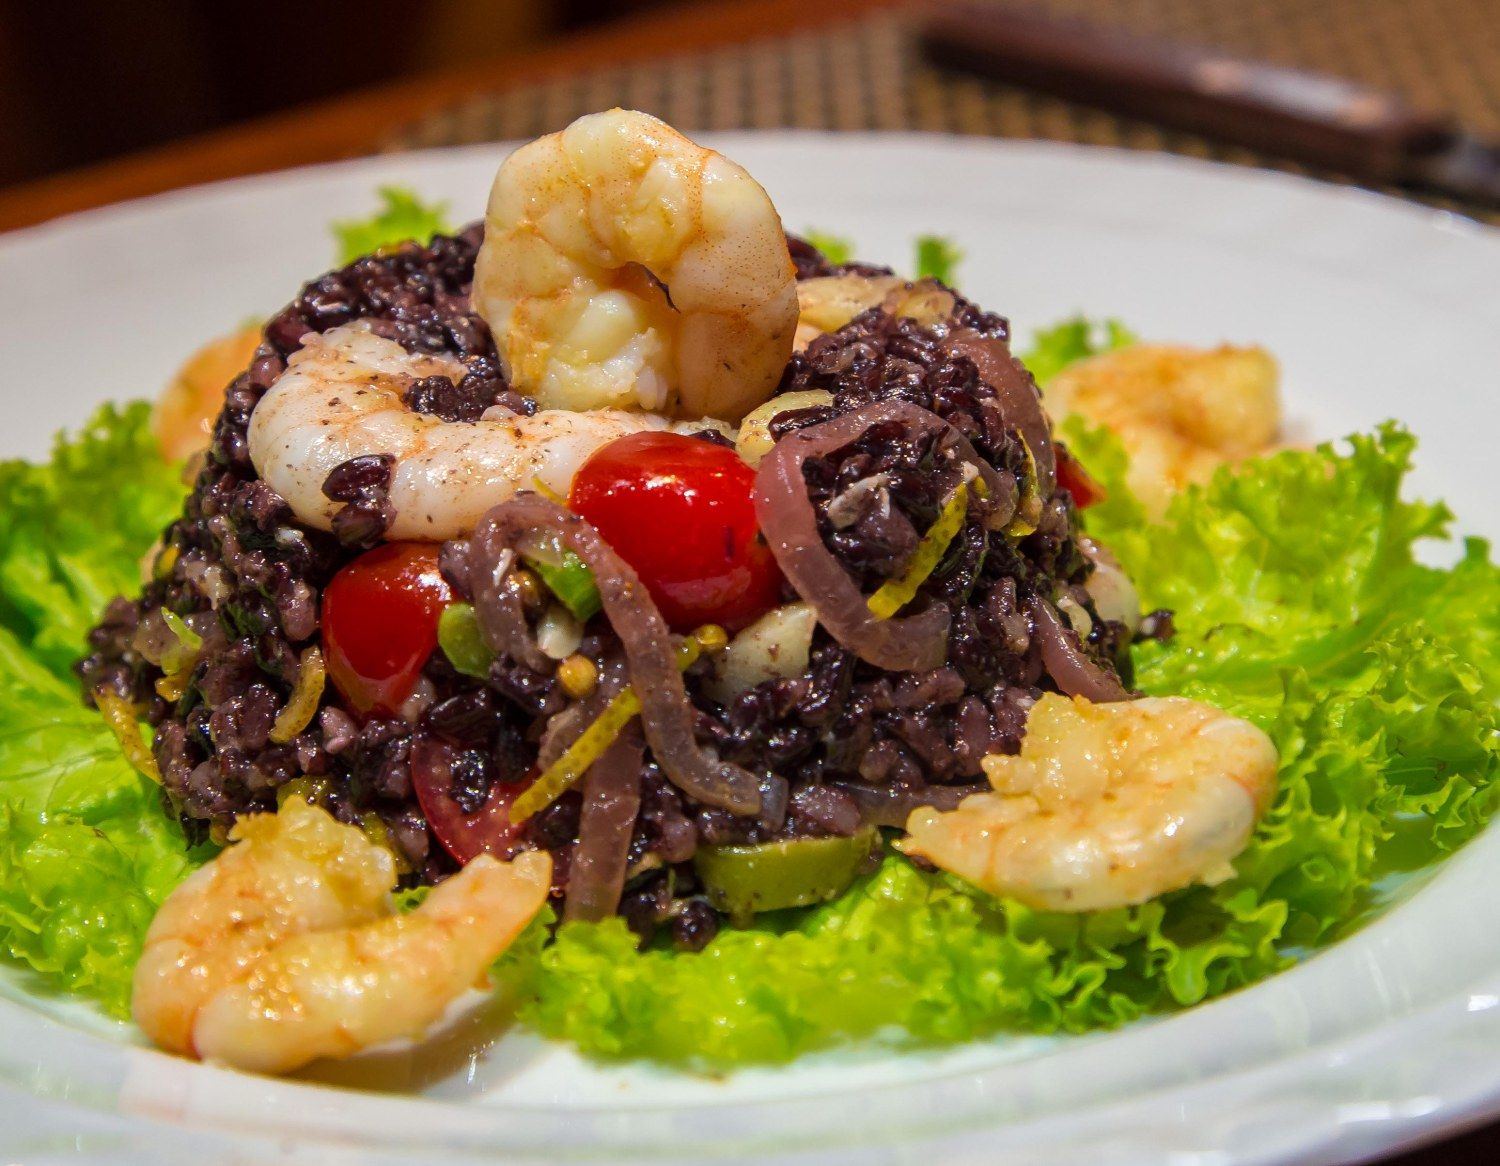 Arroz negro com frutos do mar